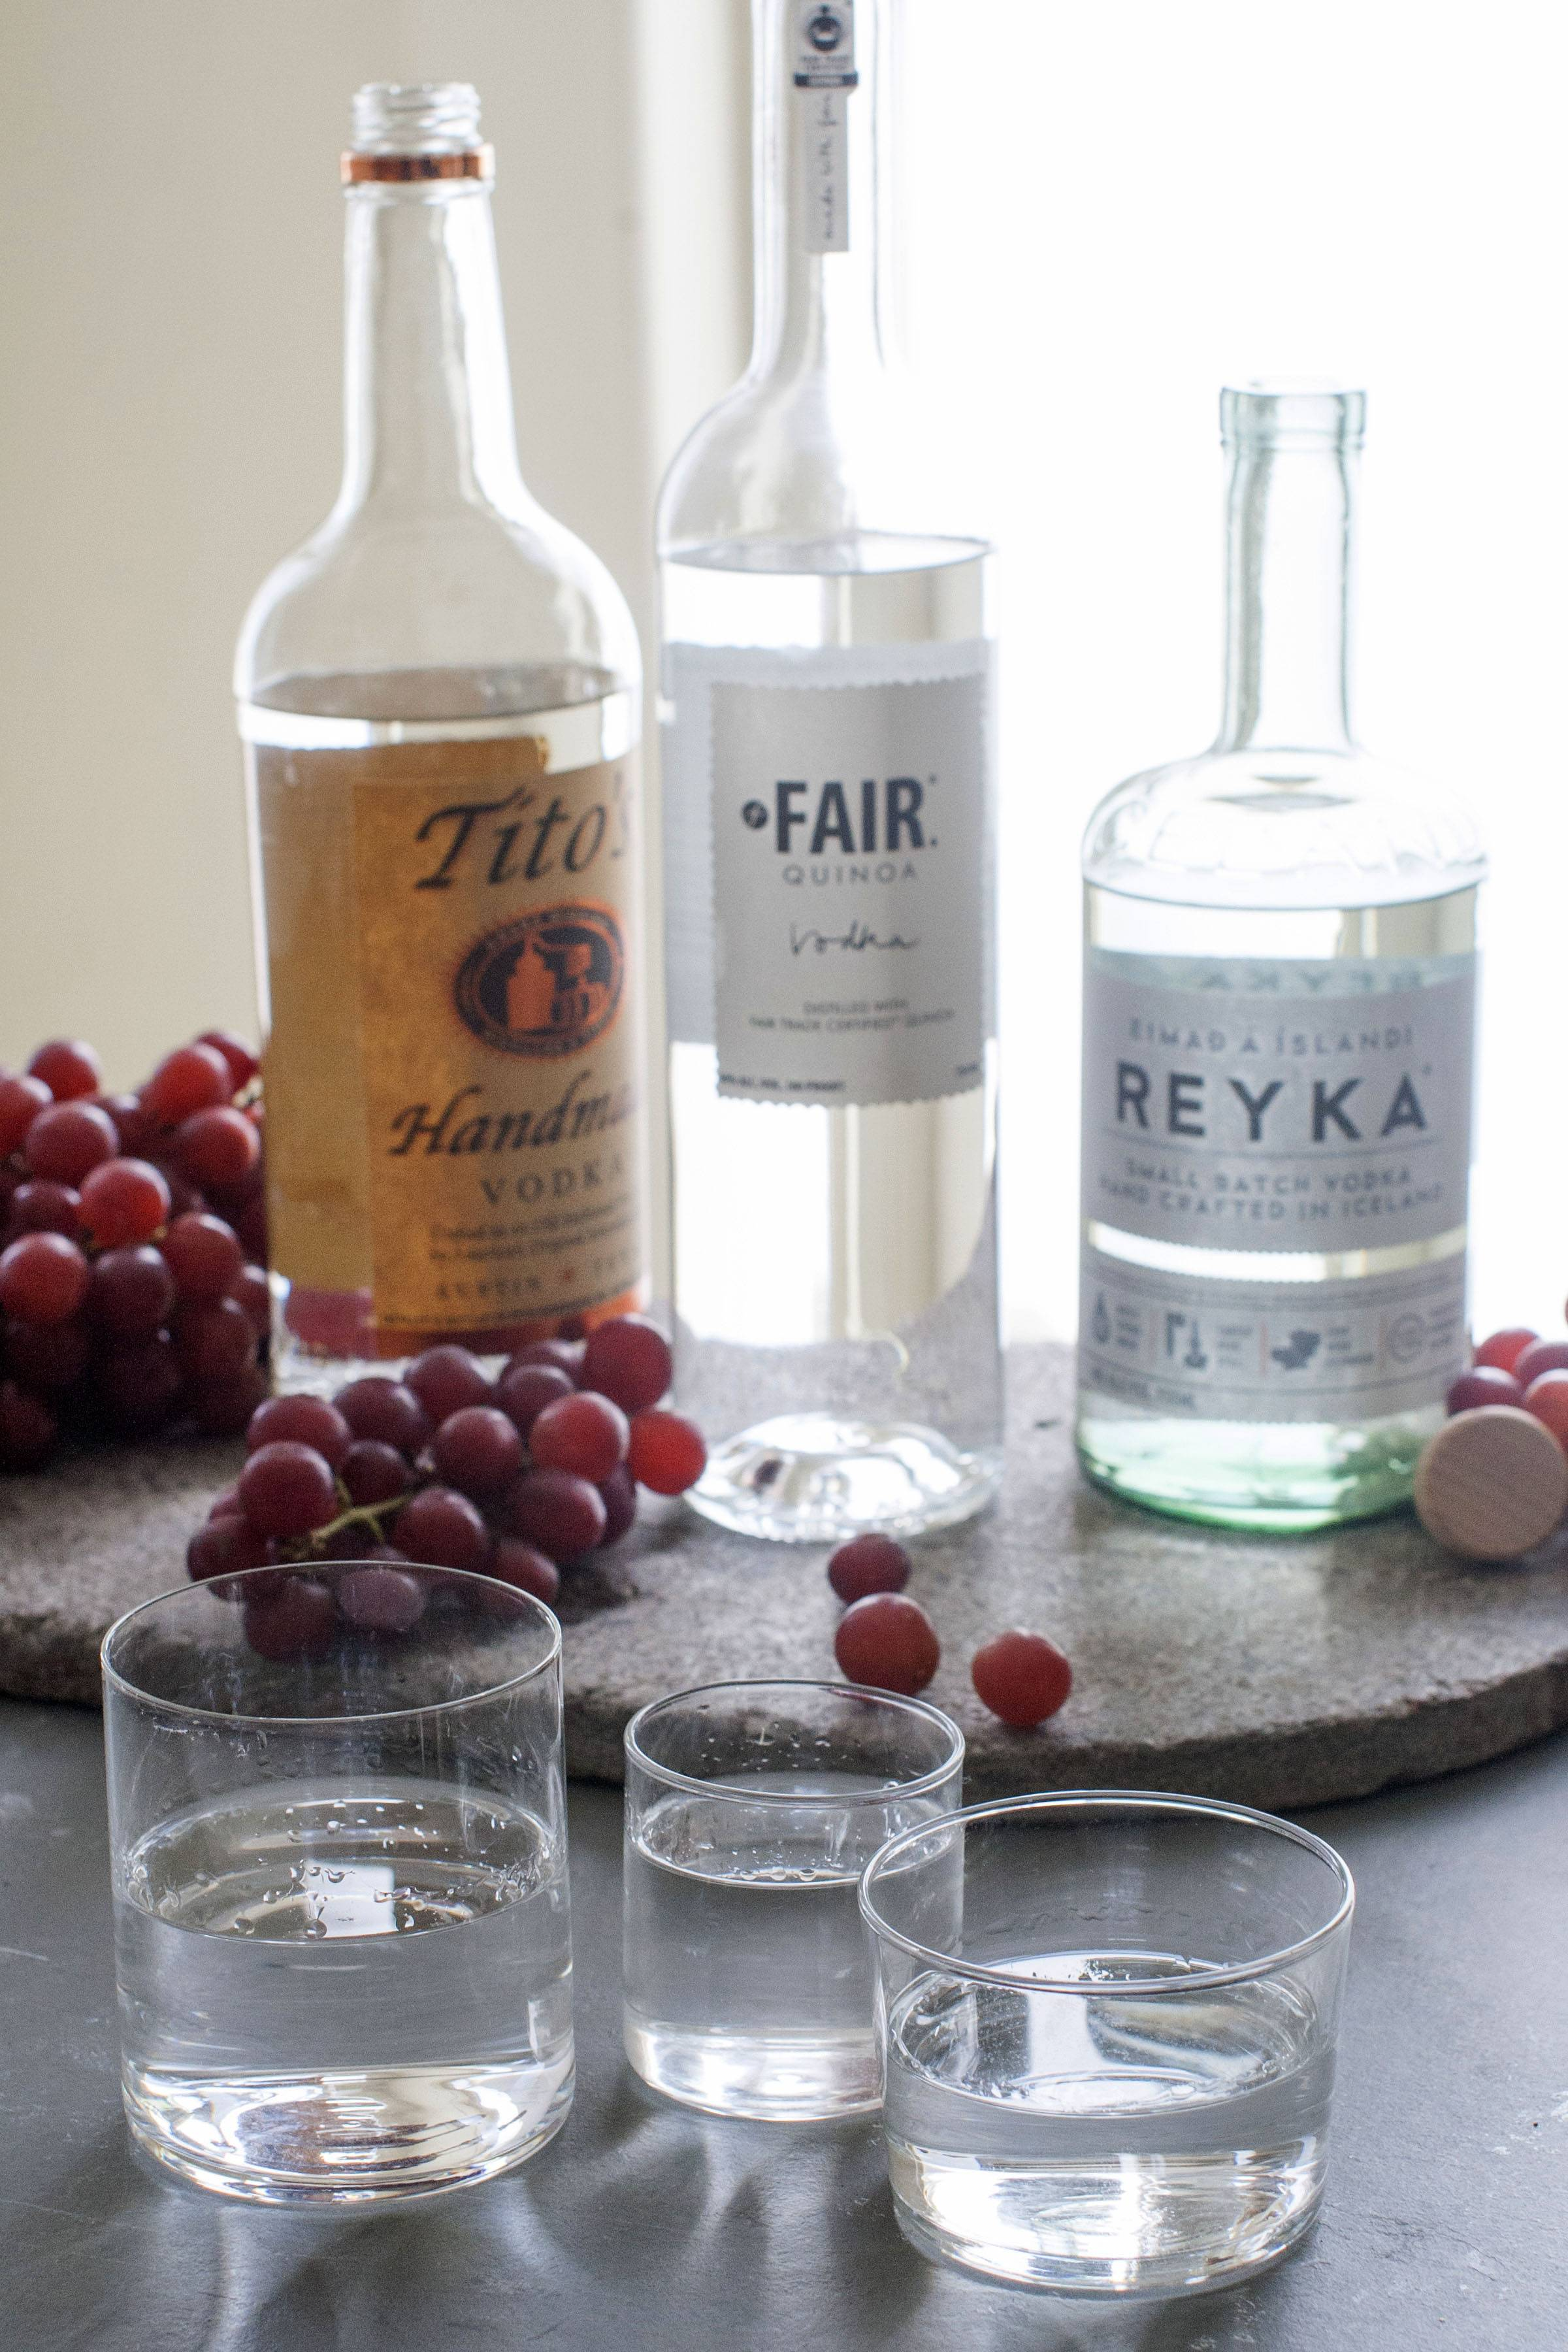 Flavored vodkas aren't going away, but many premium brands are focusing on vodkas that taste like vodka.